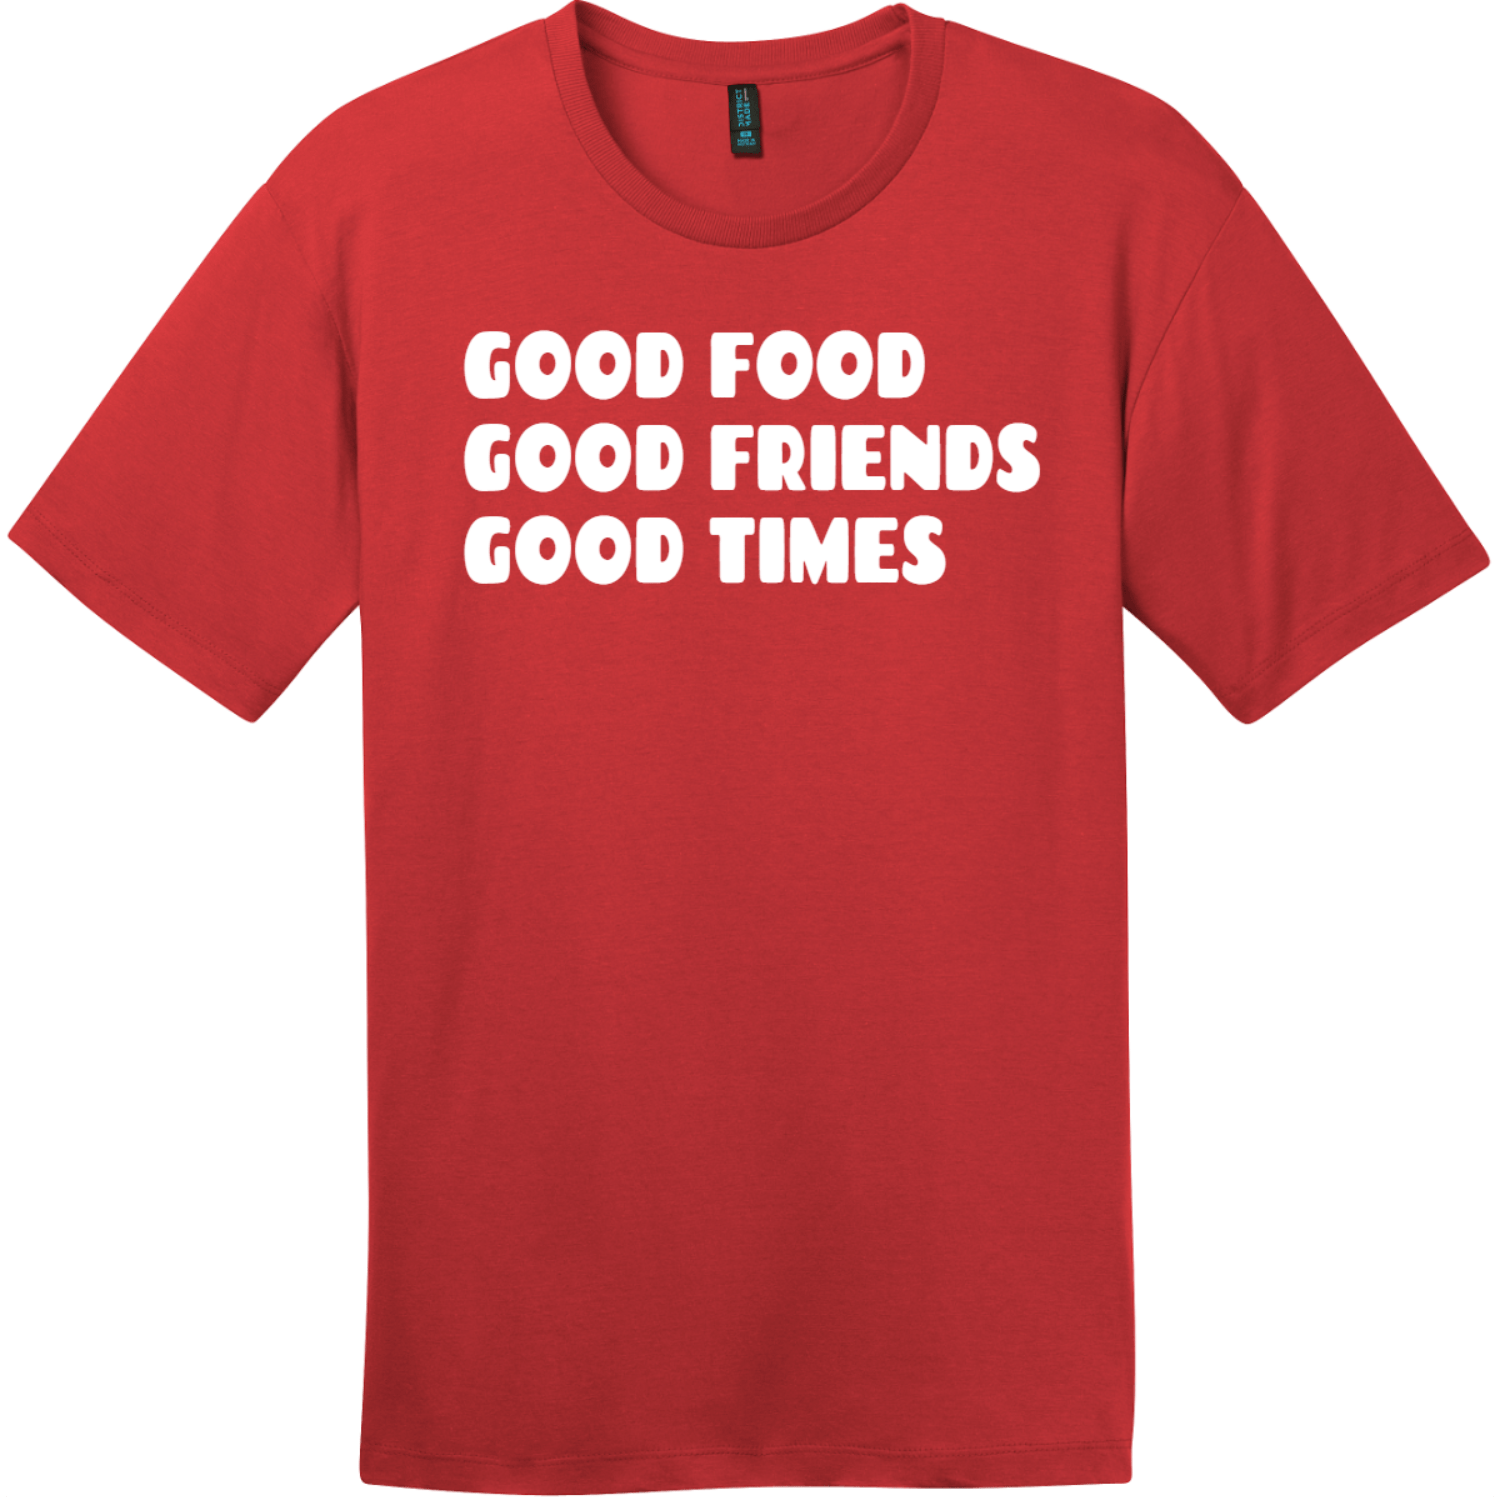 Good Food Good Friends Good Times T-Shirt Classic Red District Perfect Weight Tee DT104